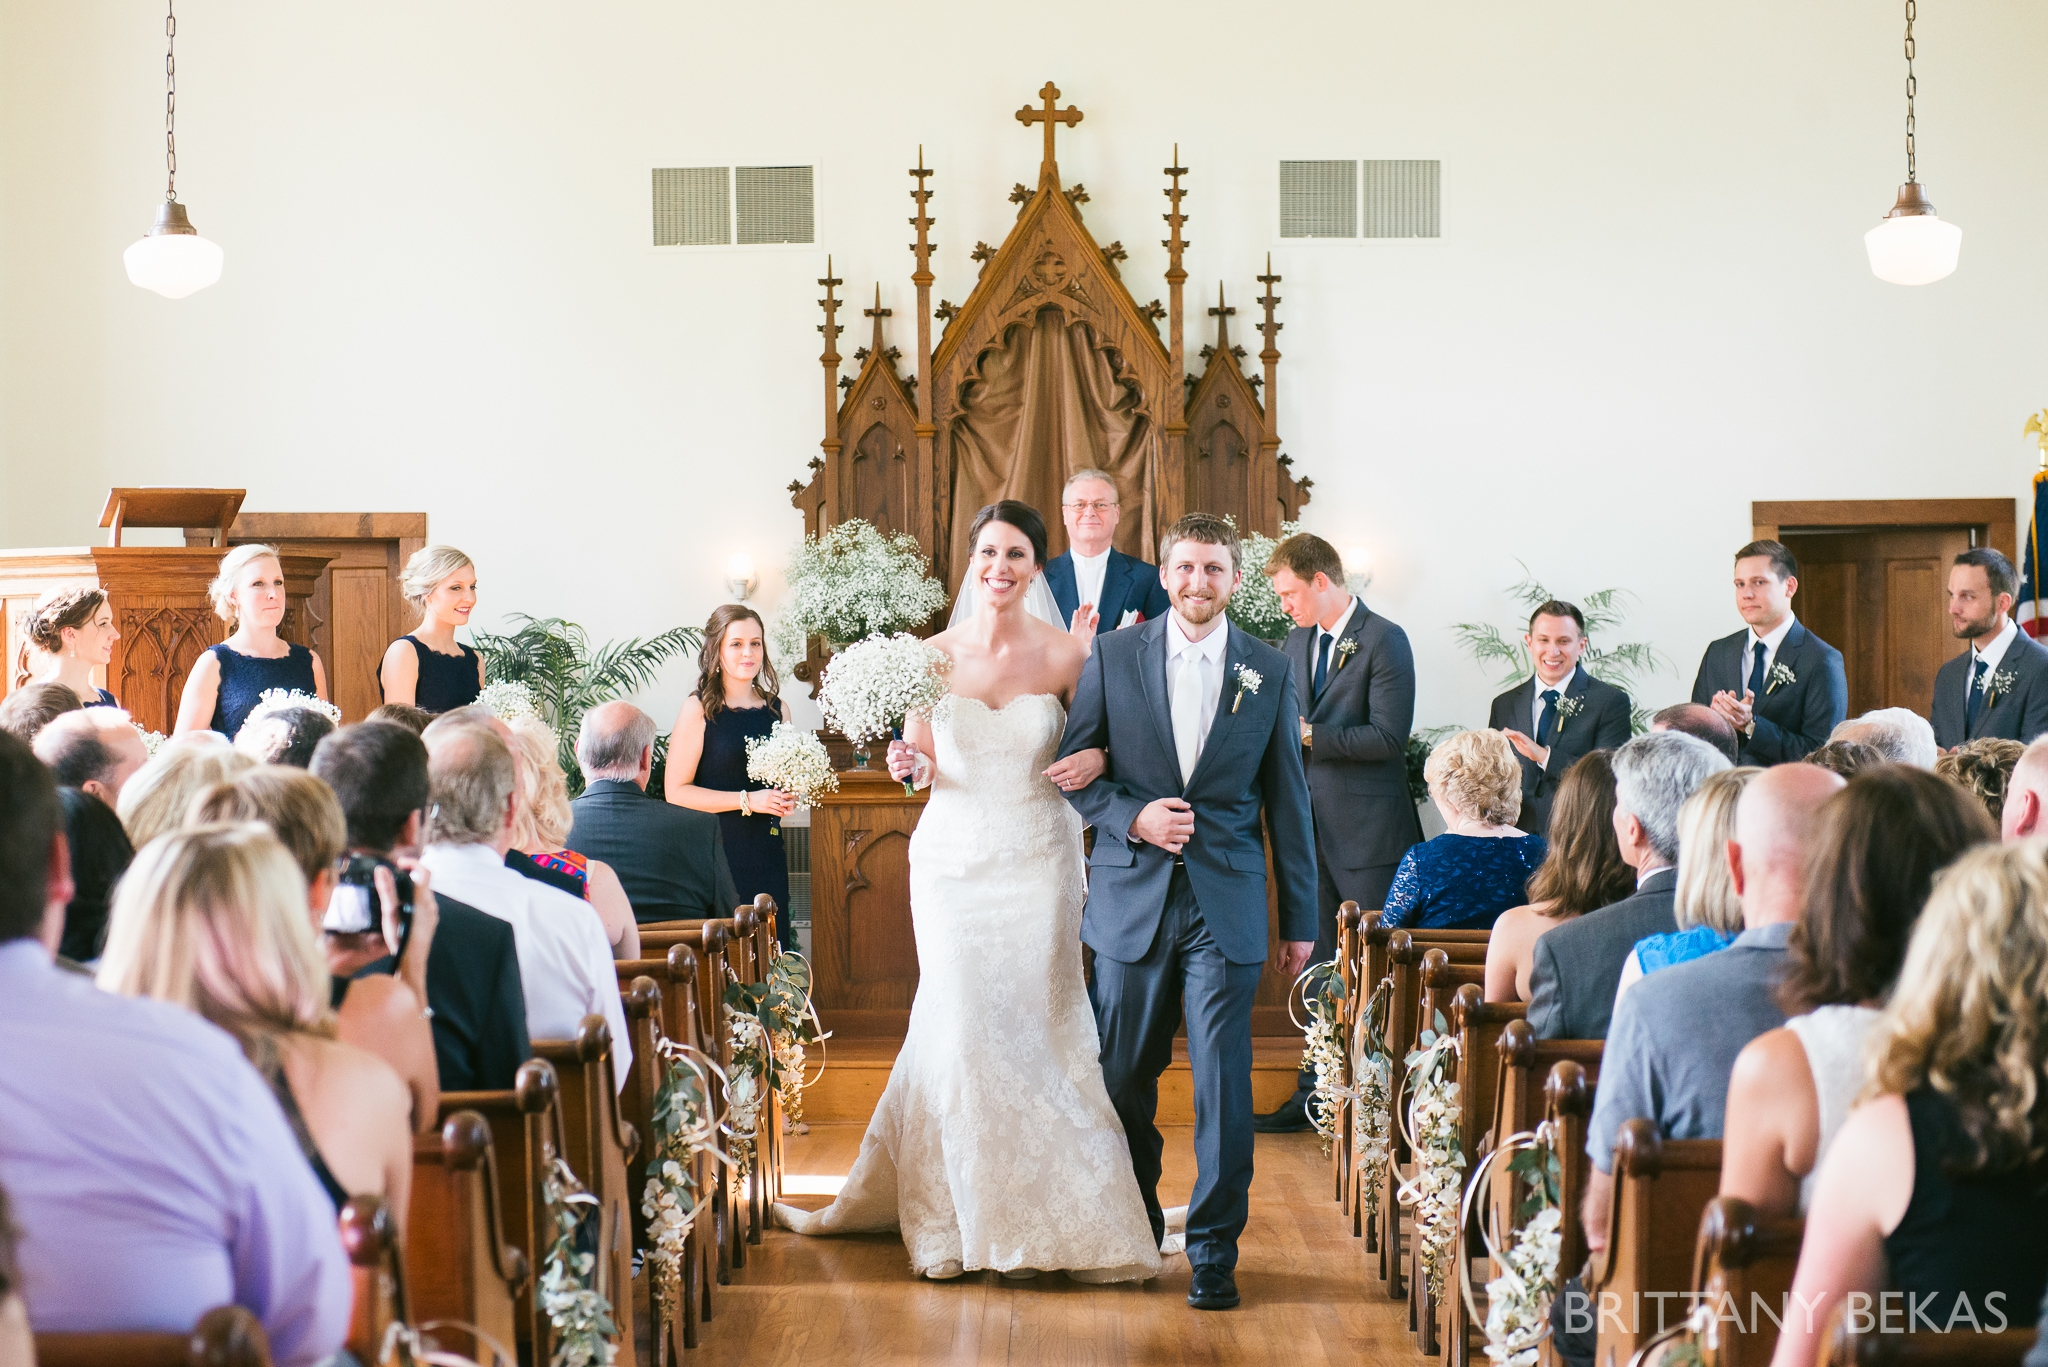 Galena Wedding - Oak Hill Wedding Photos - Brittany Bekas Photography_0028